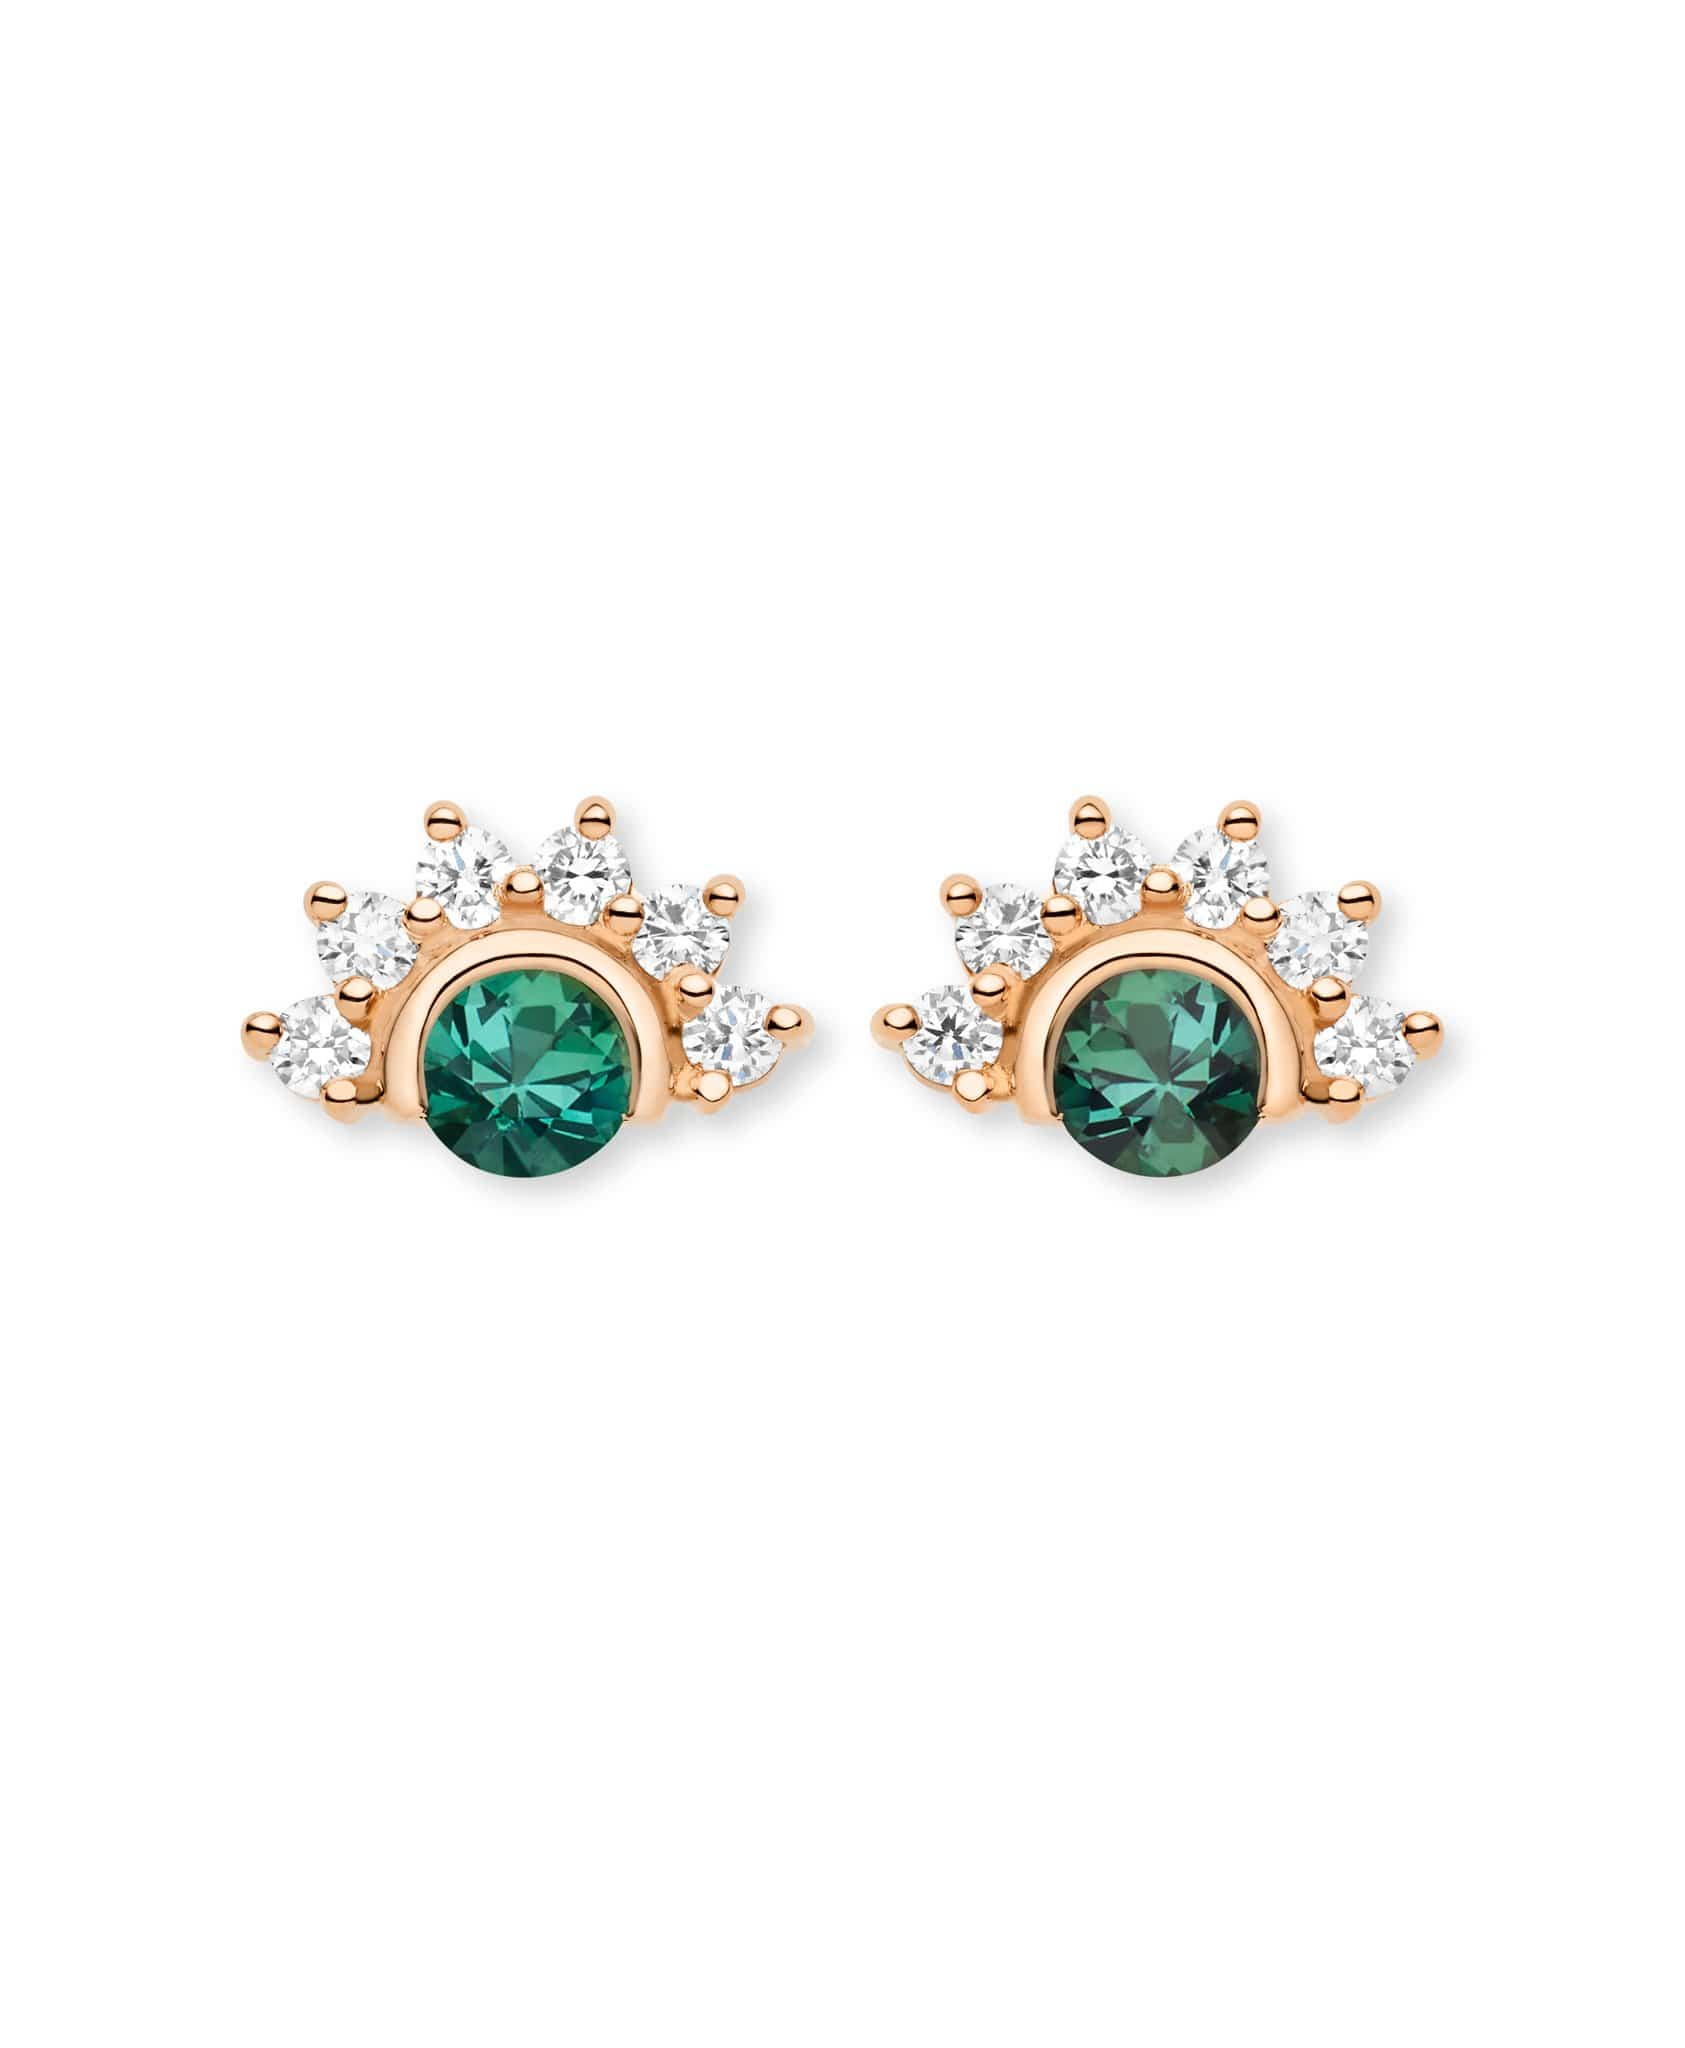 Green Tourmaline Studs: Discover Luxury Fine Jewelry | Nouvel Heritage || Rose Gold